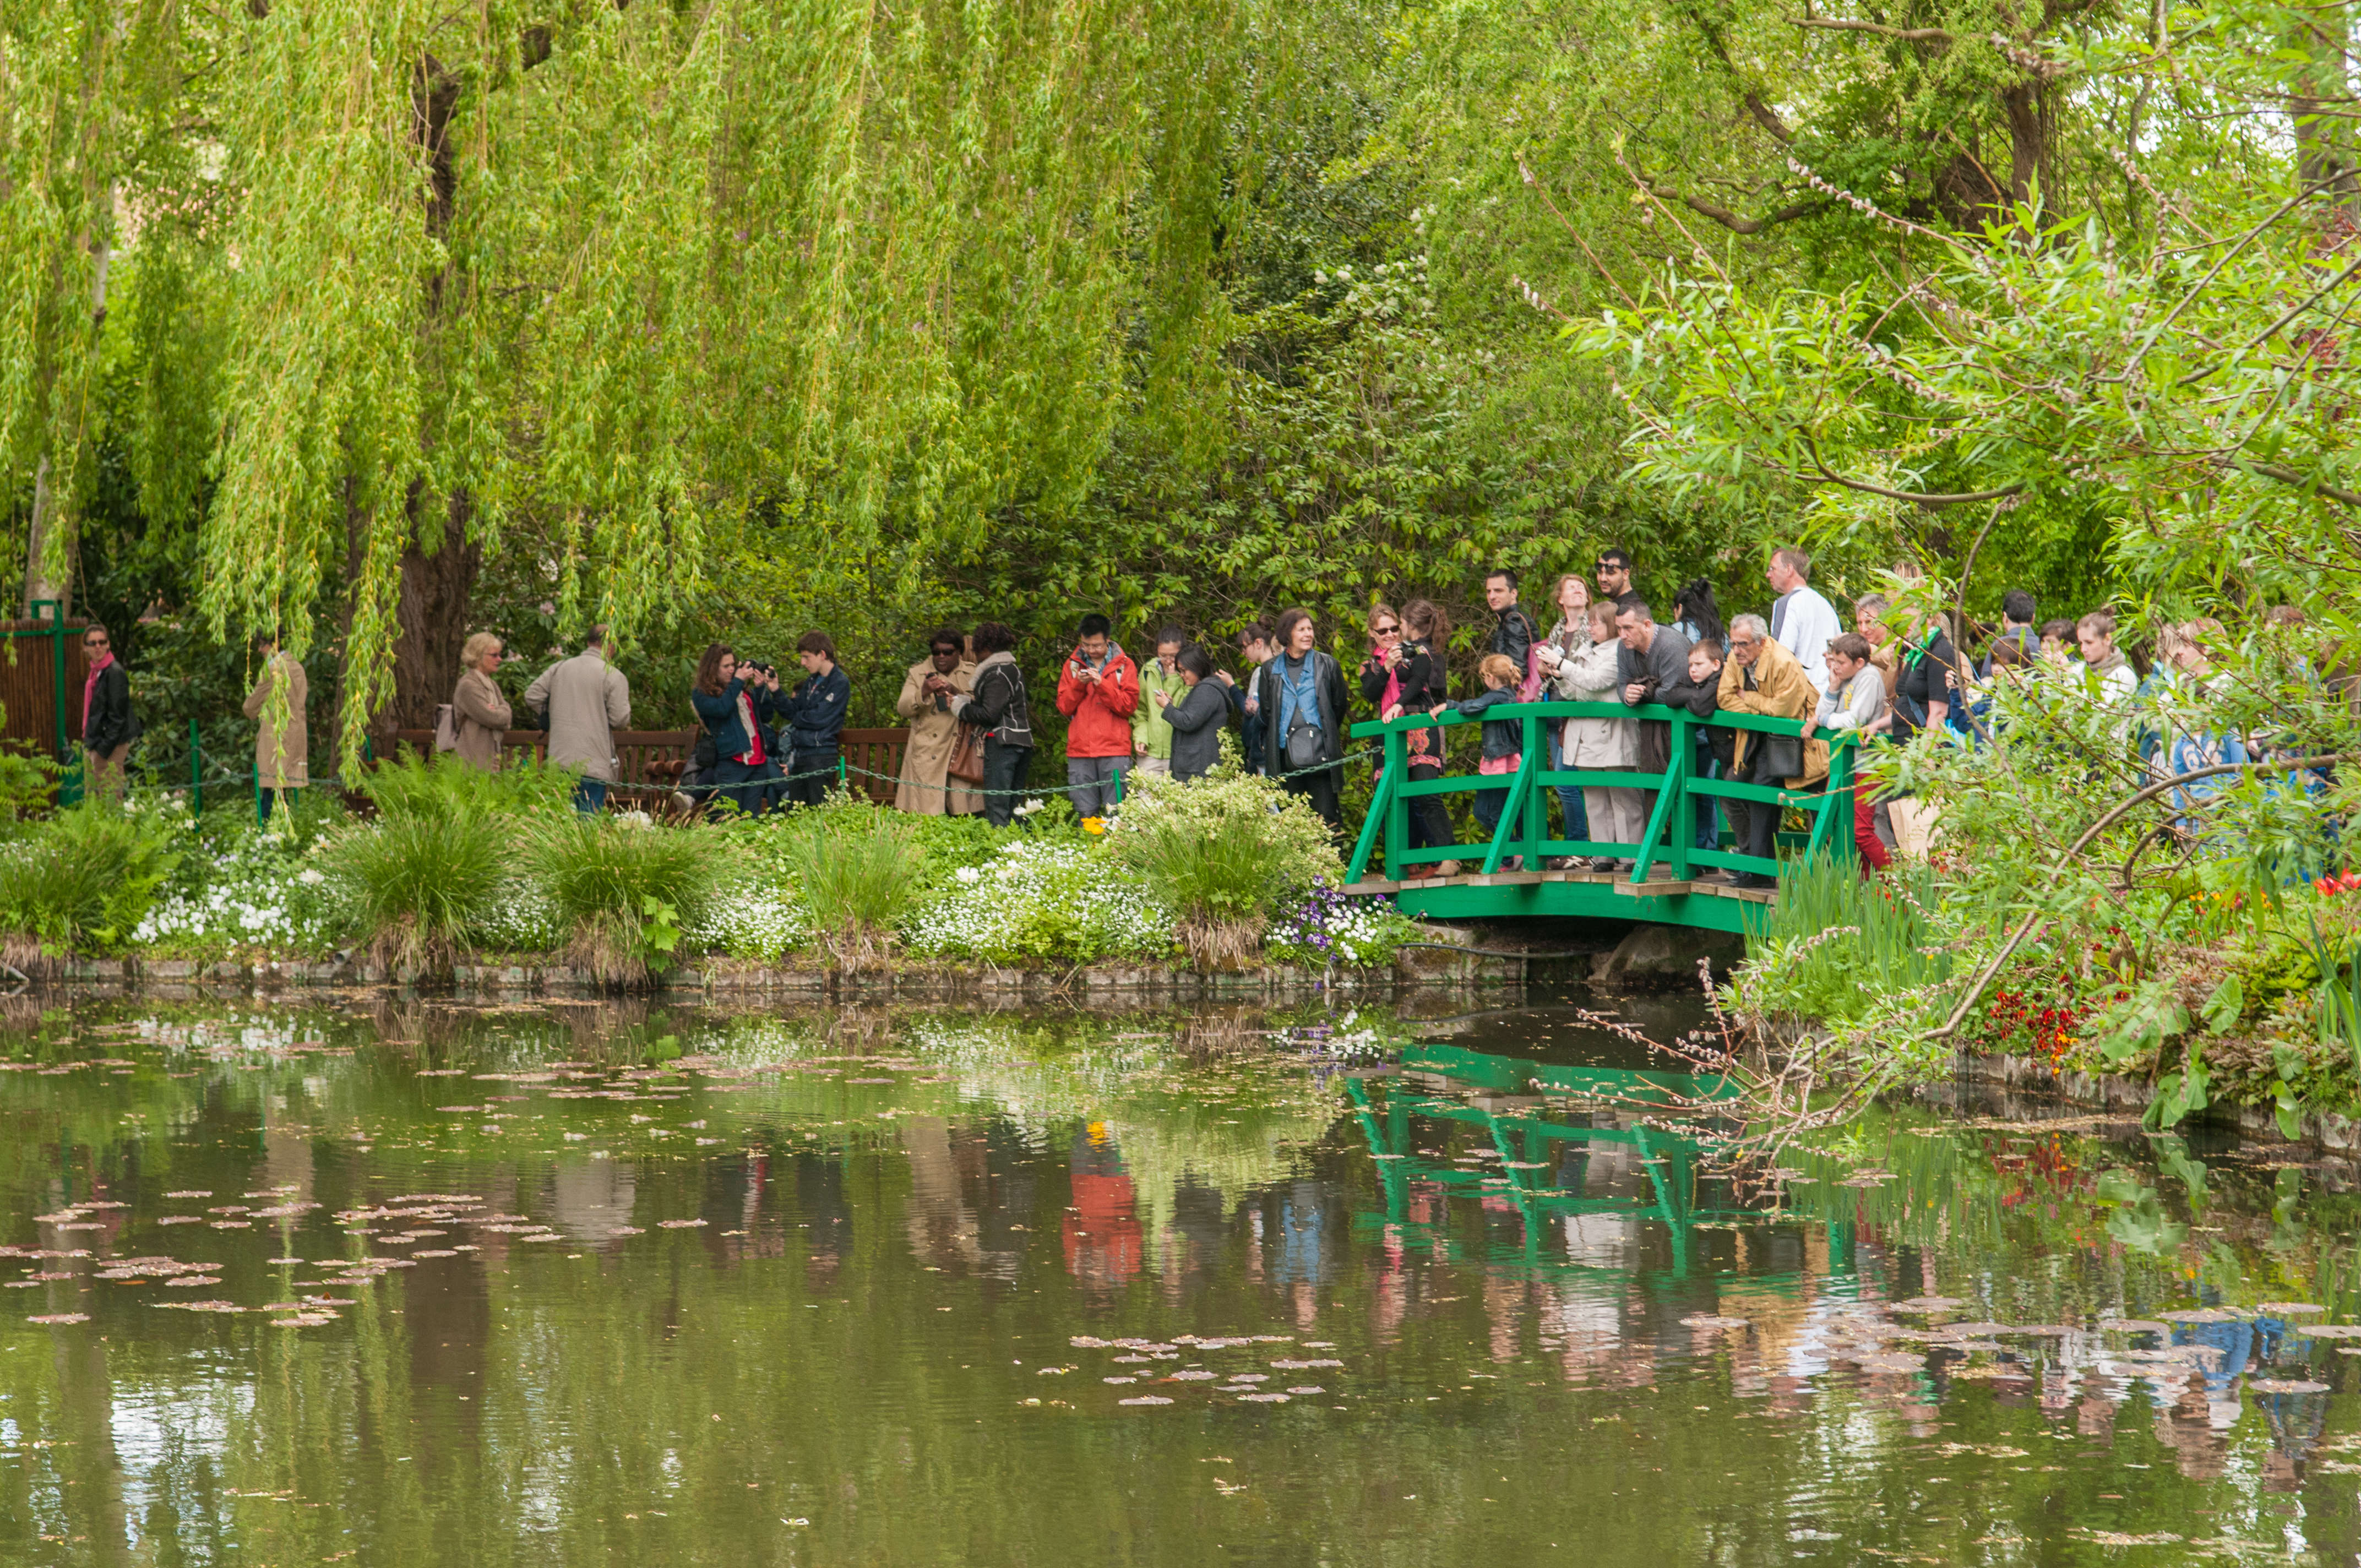 File:Claude Monet house and garden in Giverny (8742618284).jpg ...